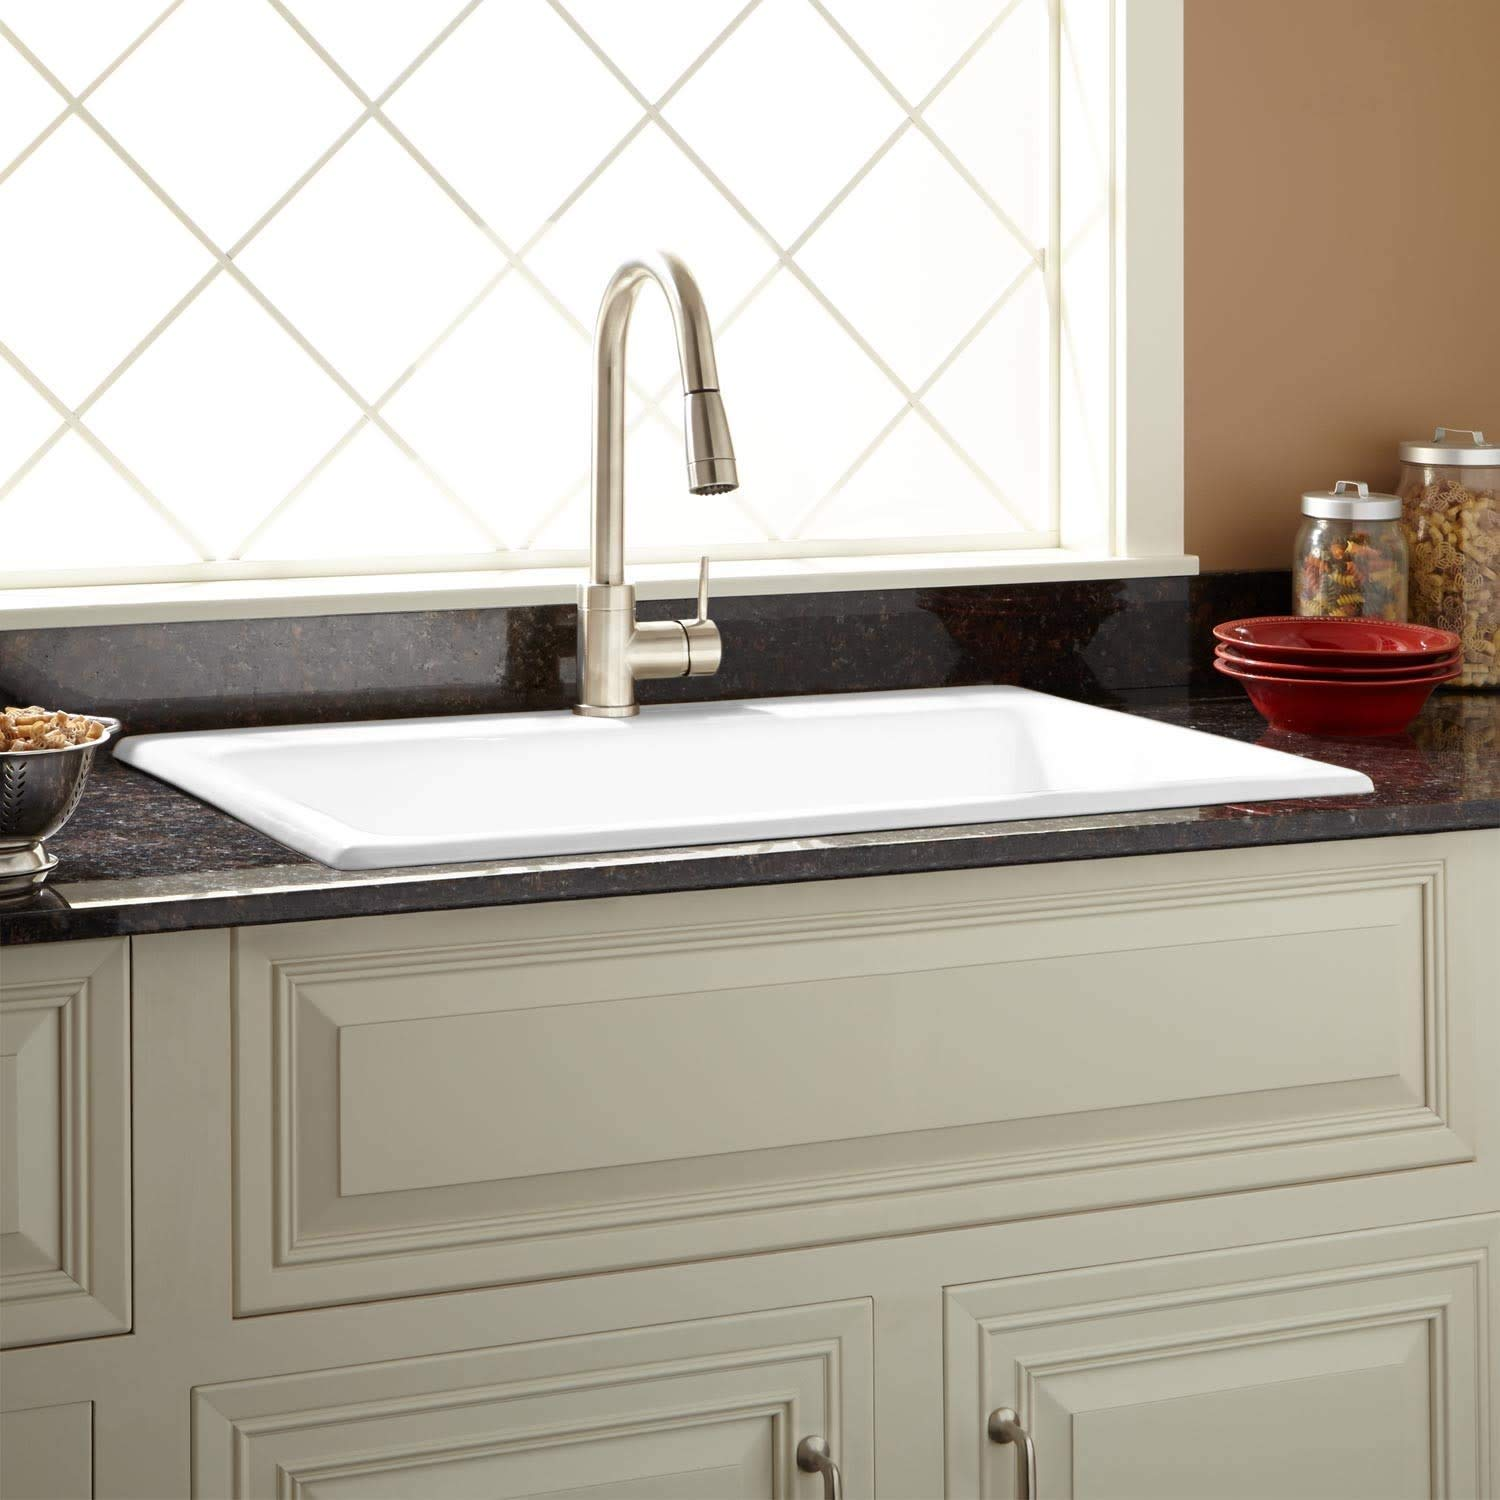 "Signature Hardware 406266 Palazzo 34"" Drop In Single Basin Cast Iron Kitchen Sink with 1 Faucet Hole"